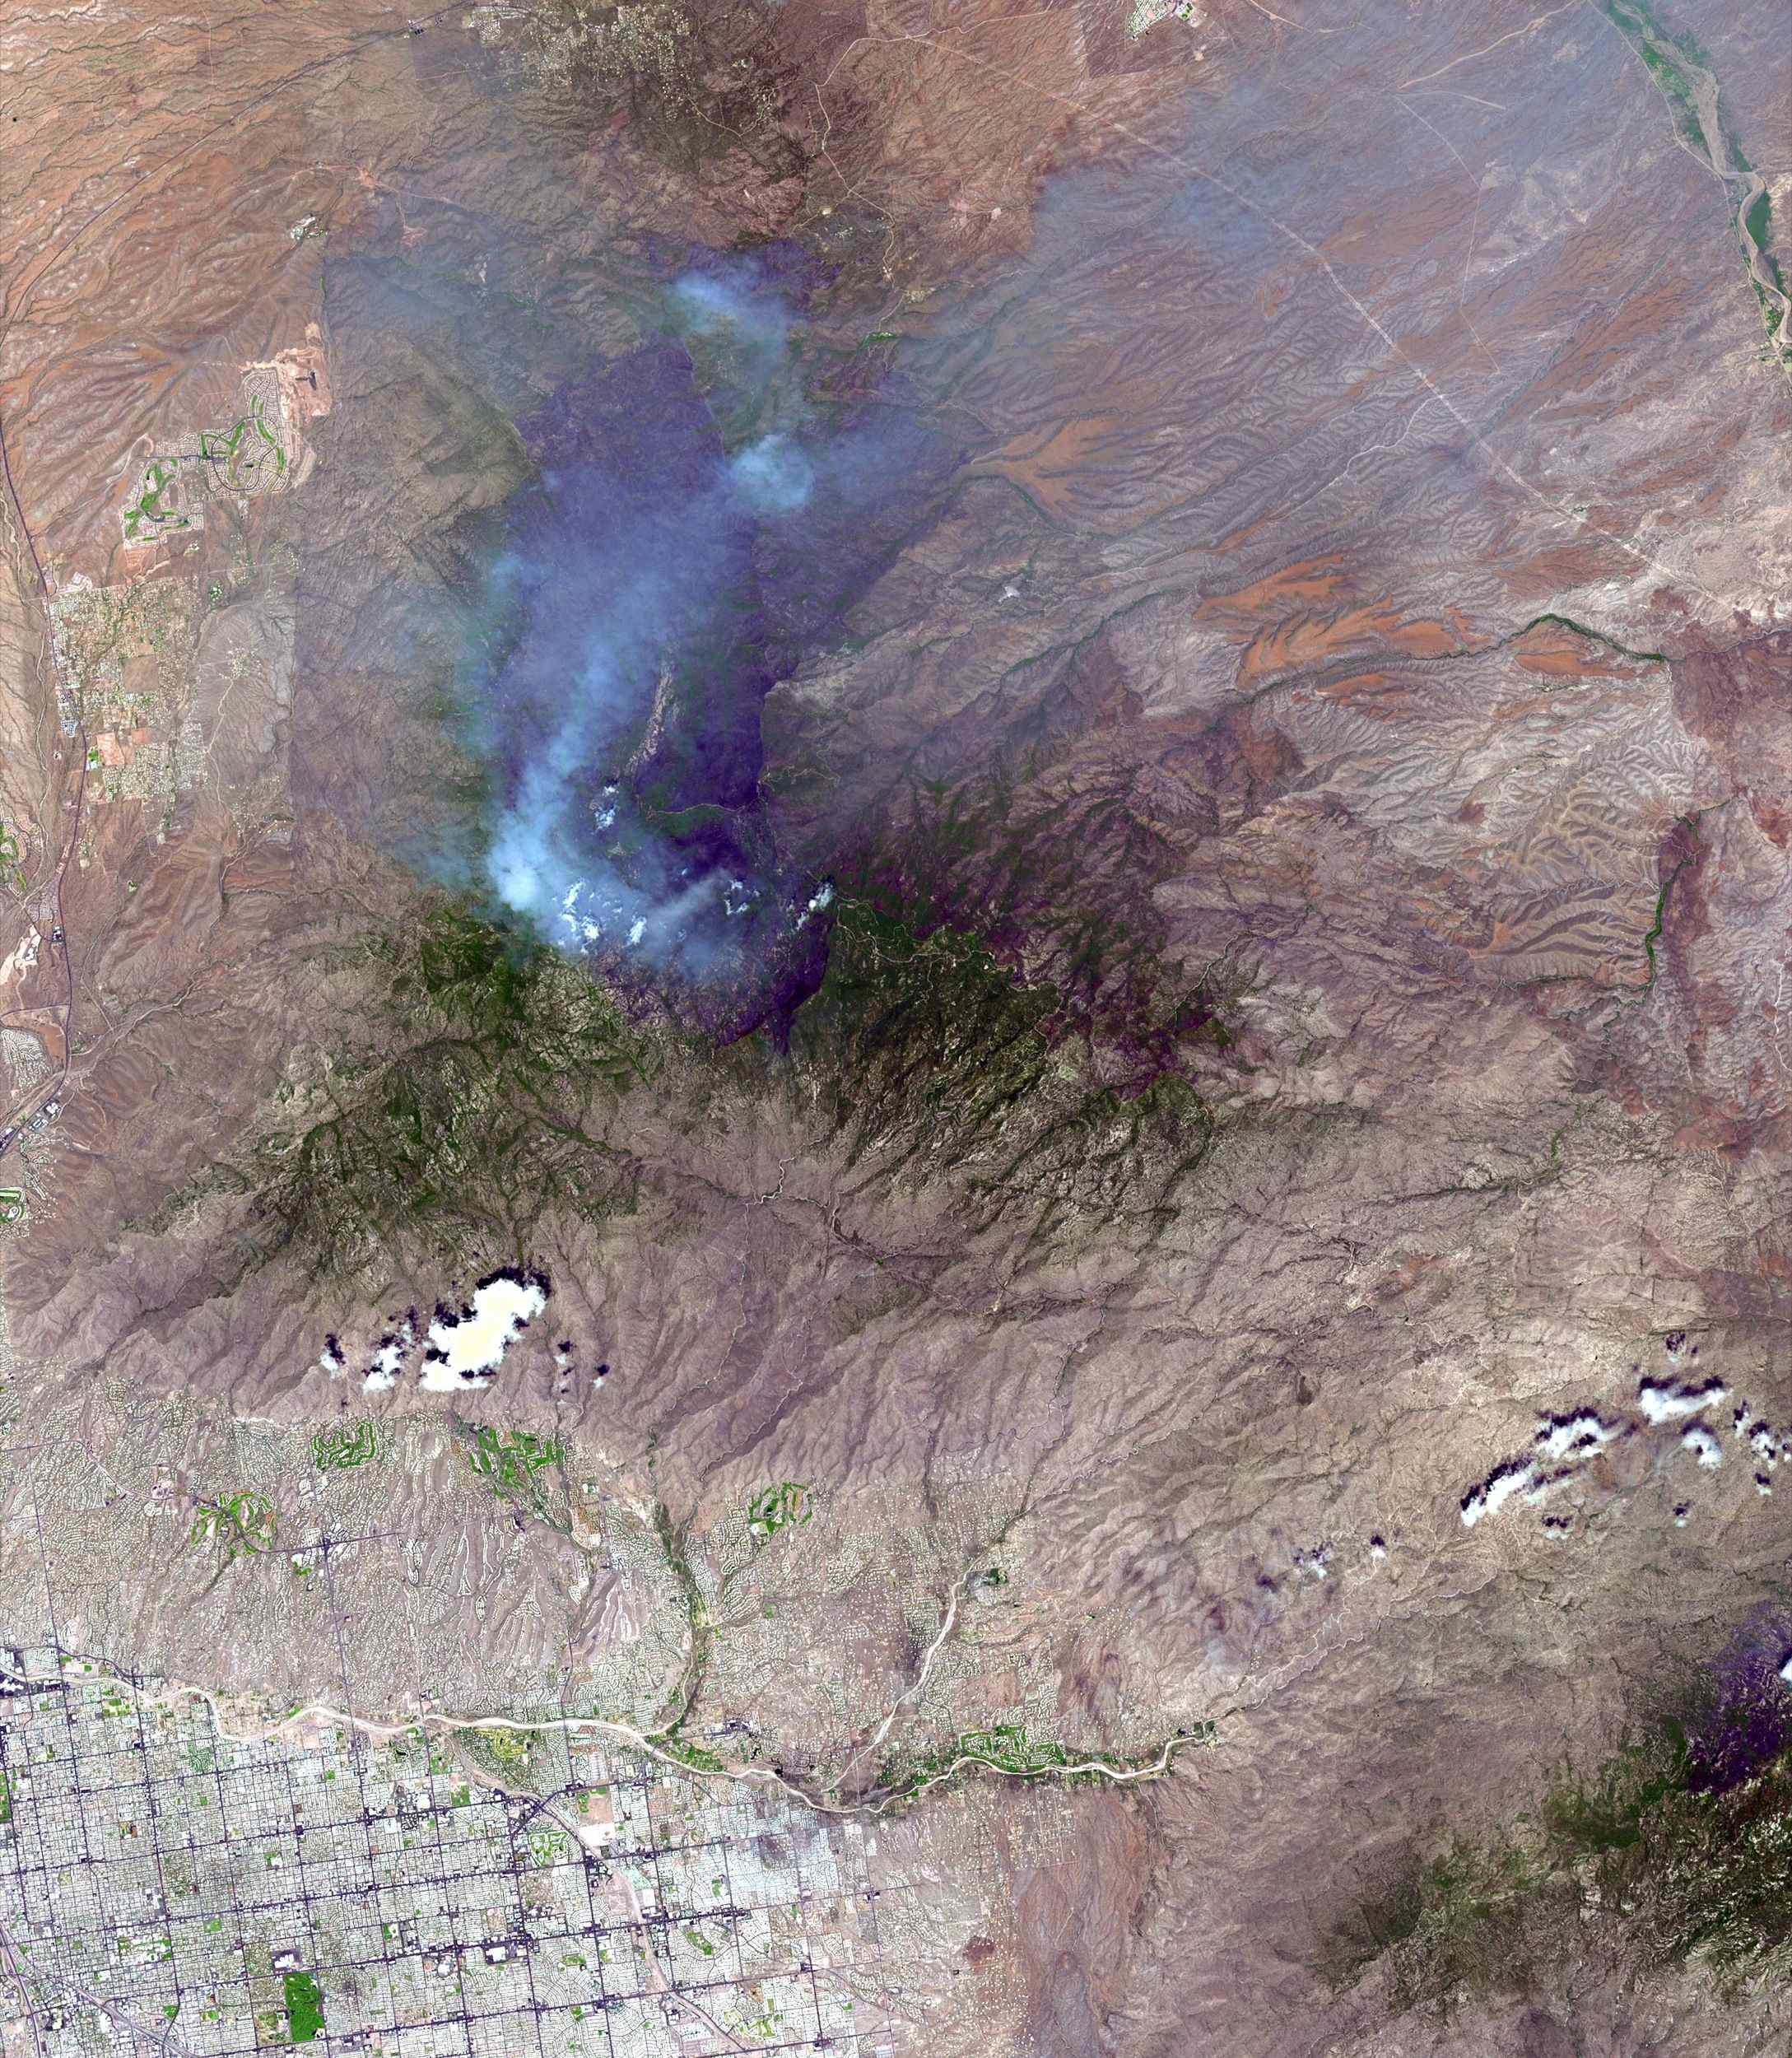 On June 26, NASA's Terra satellite acquired this image of the Aspen fire burning out of control north of Tucson, AZ.